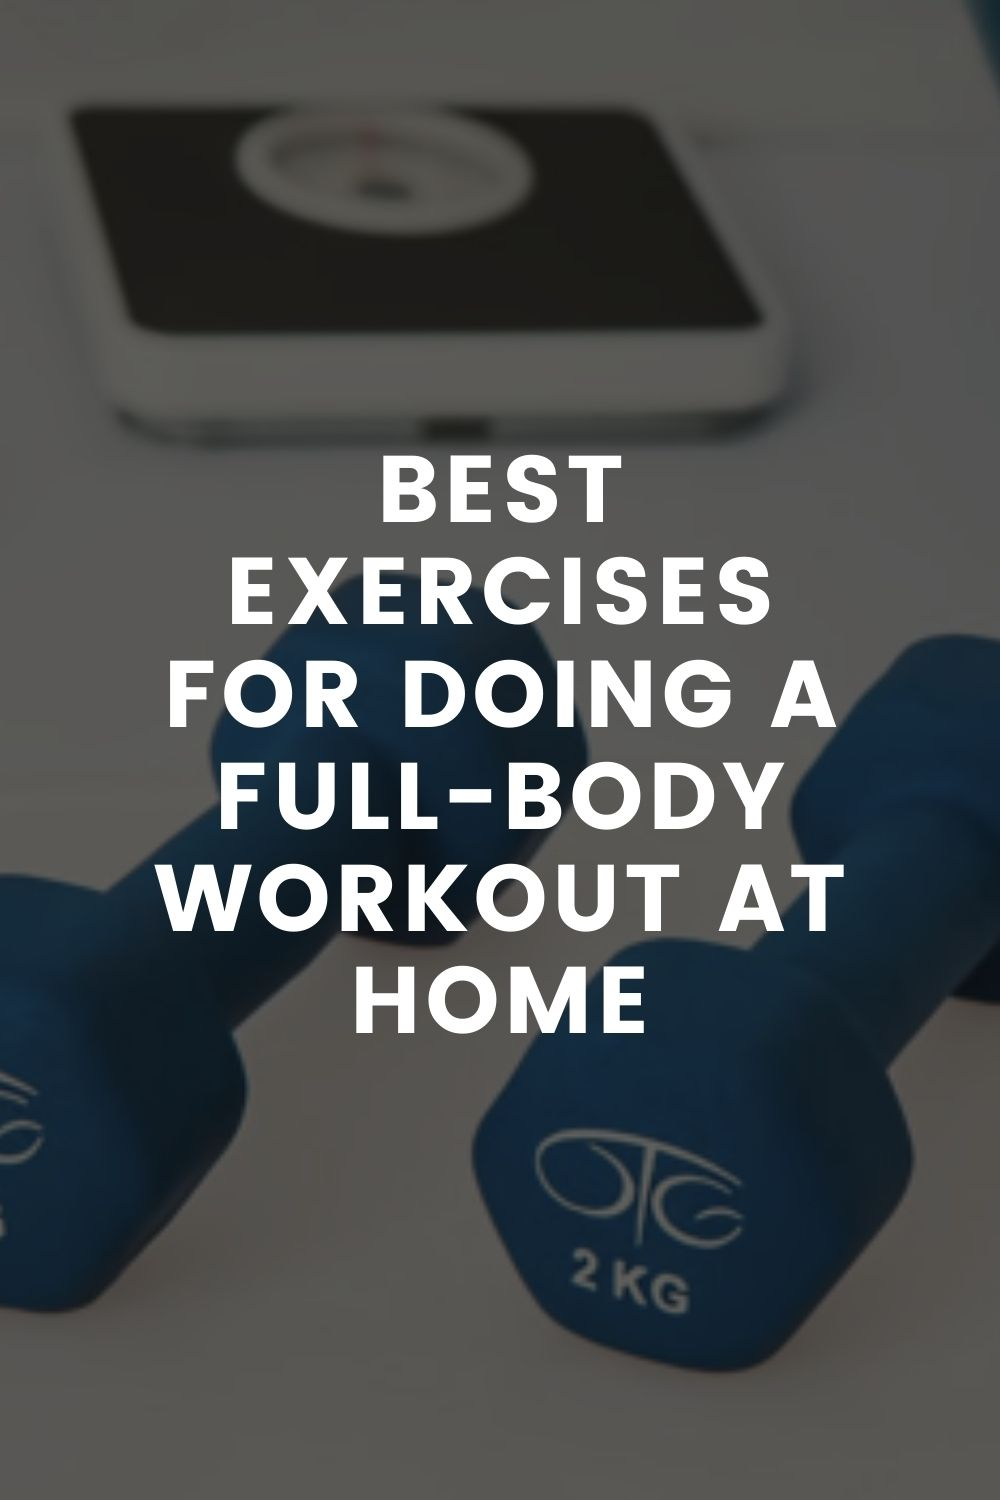 Best Exercises For Doing a Full-Body Workout At Home